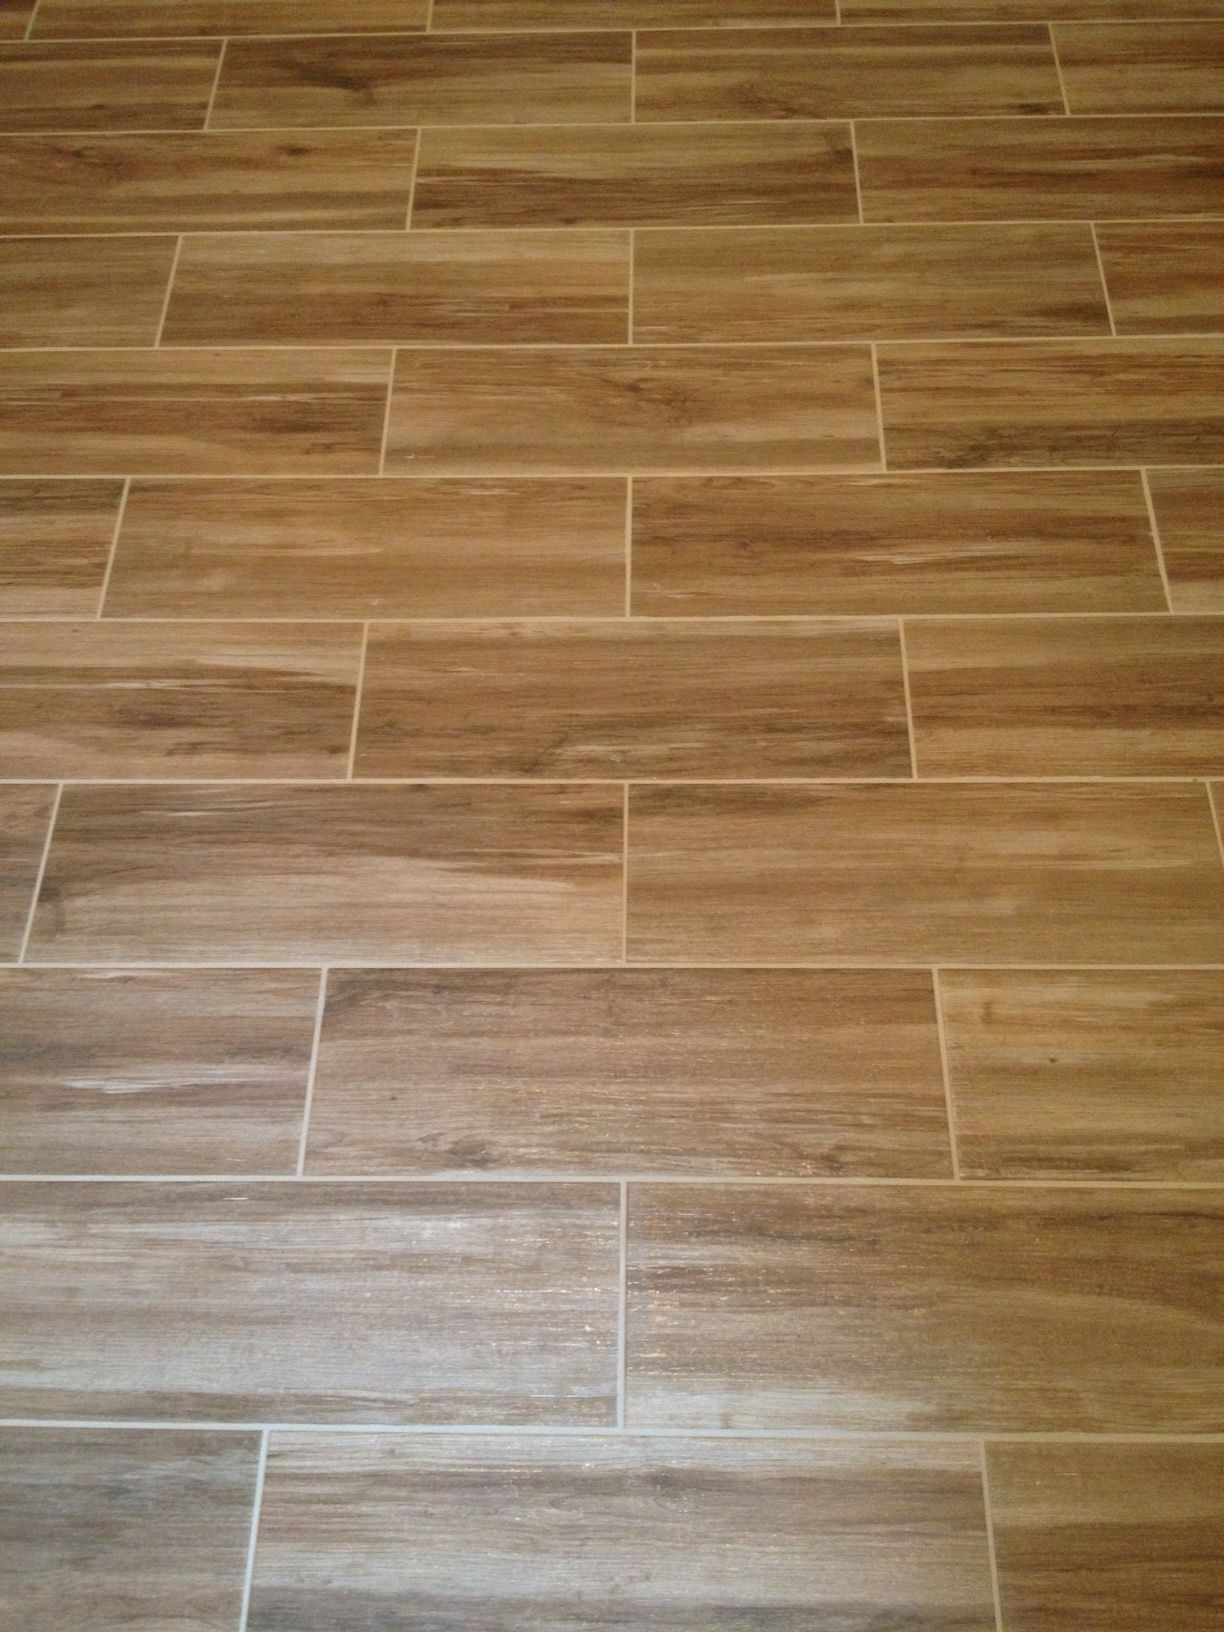 Wood Porcelain Plank Tile Home Remodel Pinterest